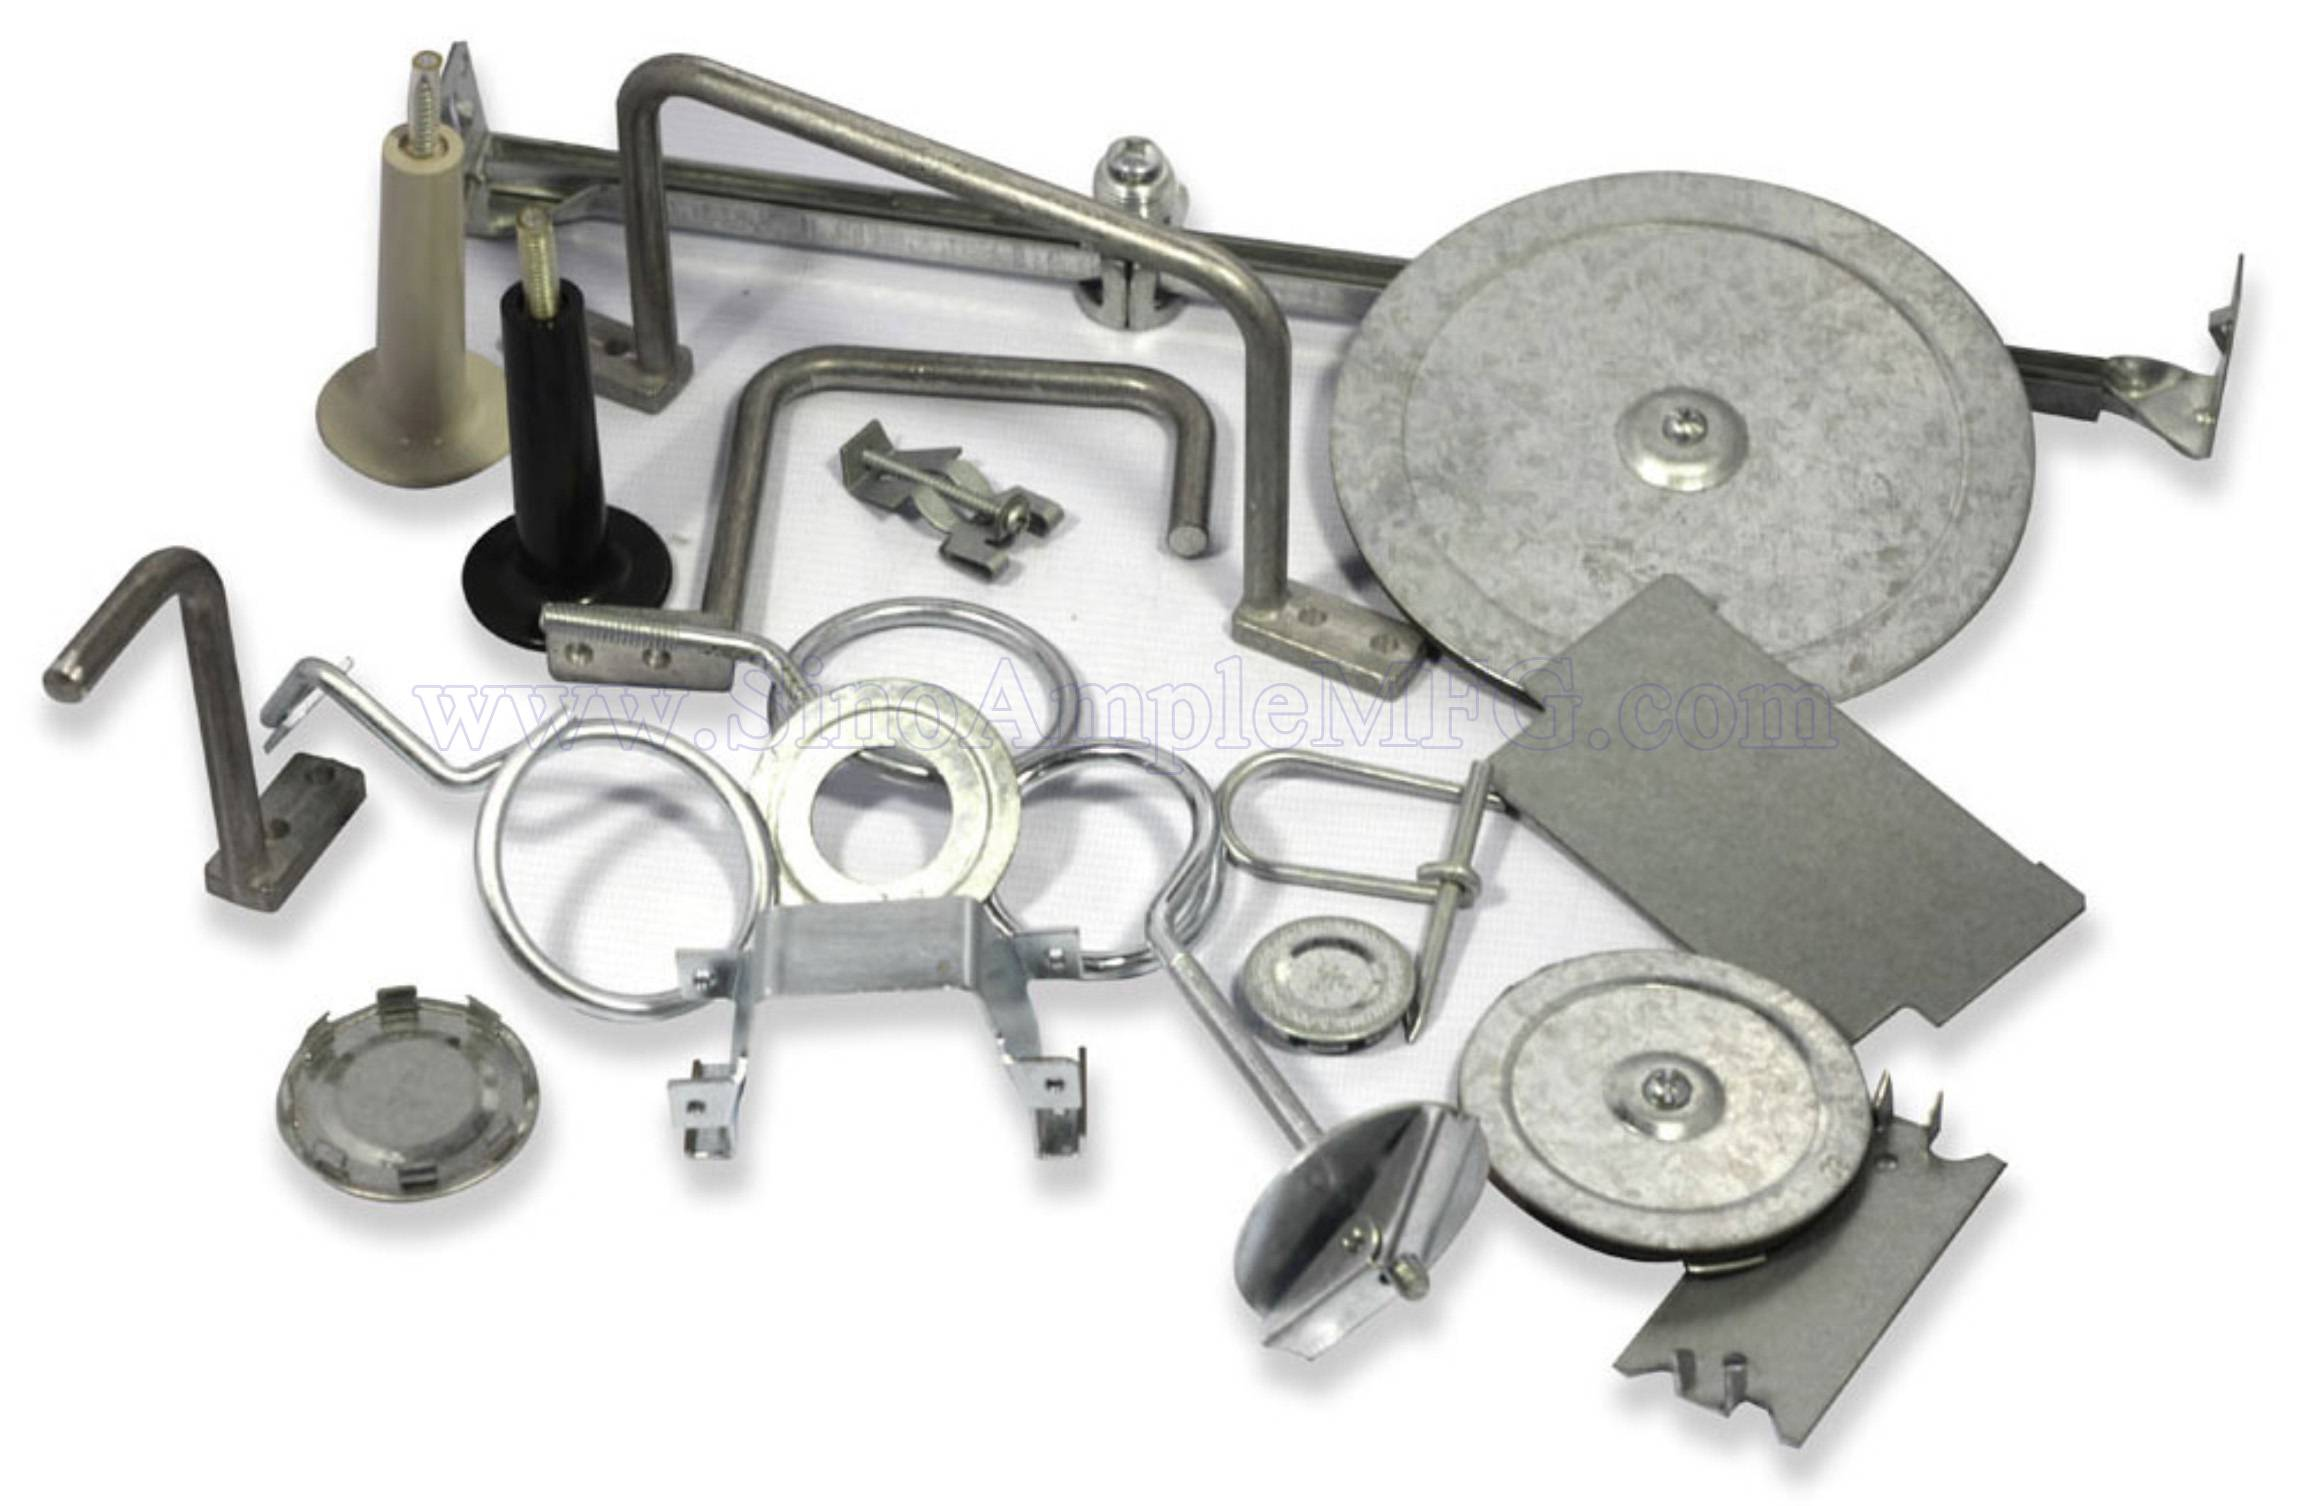 Stamped hangers/clamps/hooks